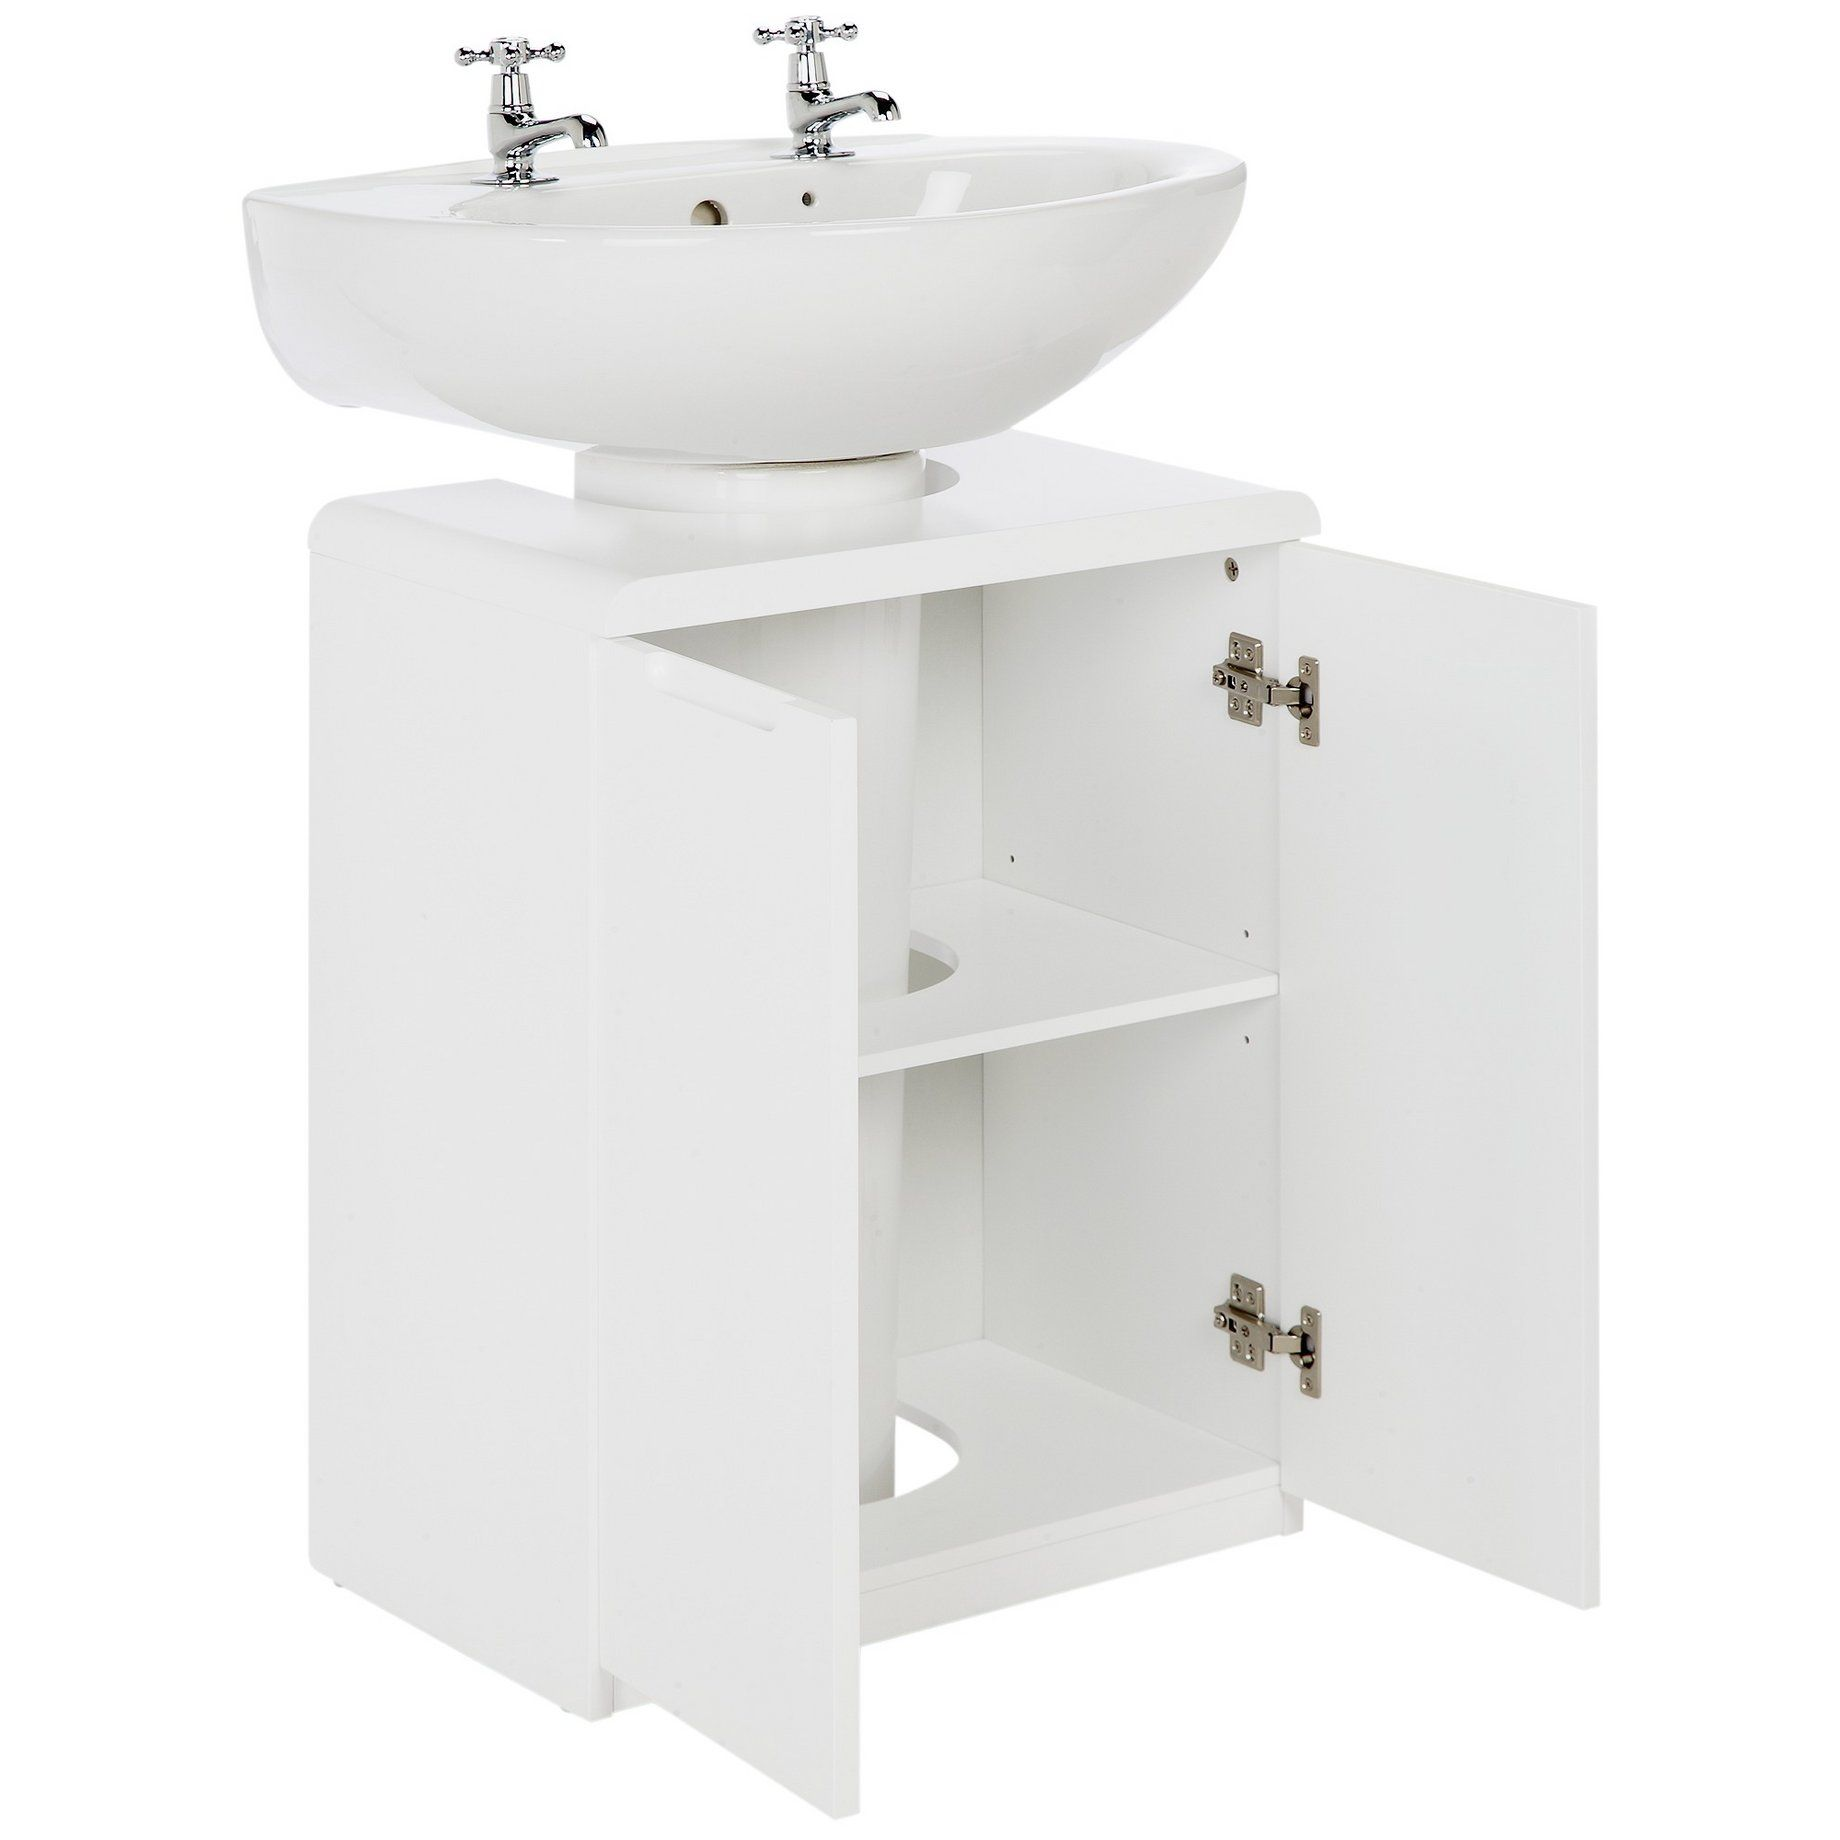 Stupendous Buy Hygena Curve Under Sink Storage Unit White At Argos Co Home Interior And Landscaping Ologienasavecom